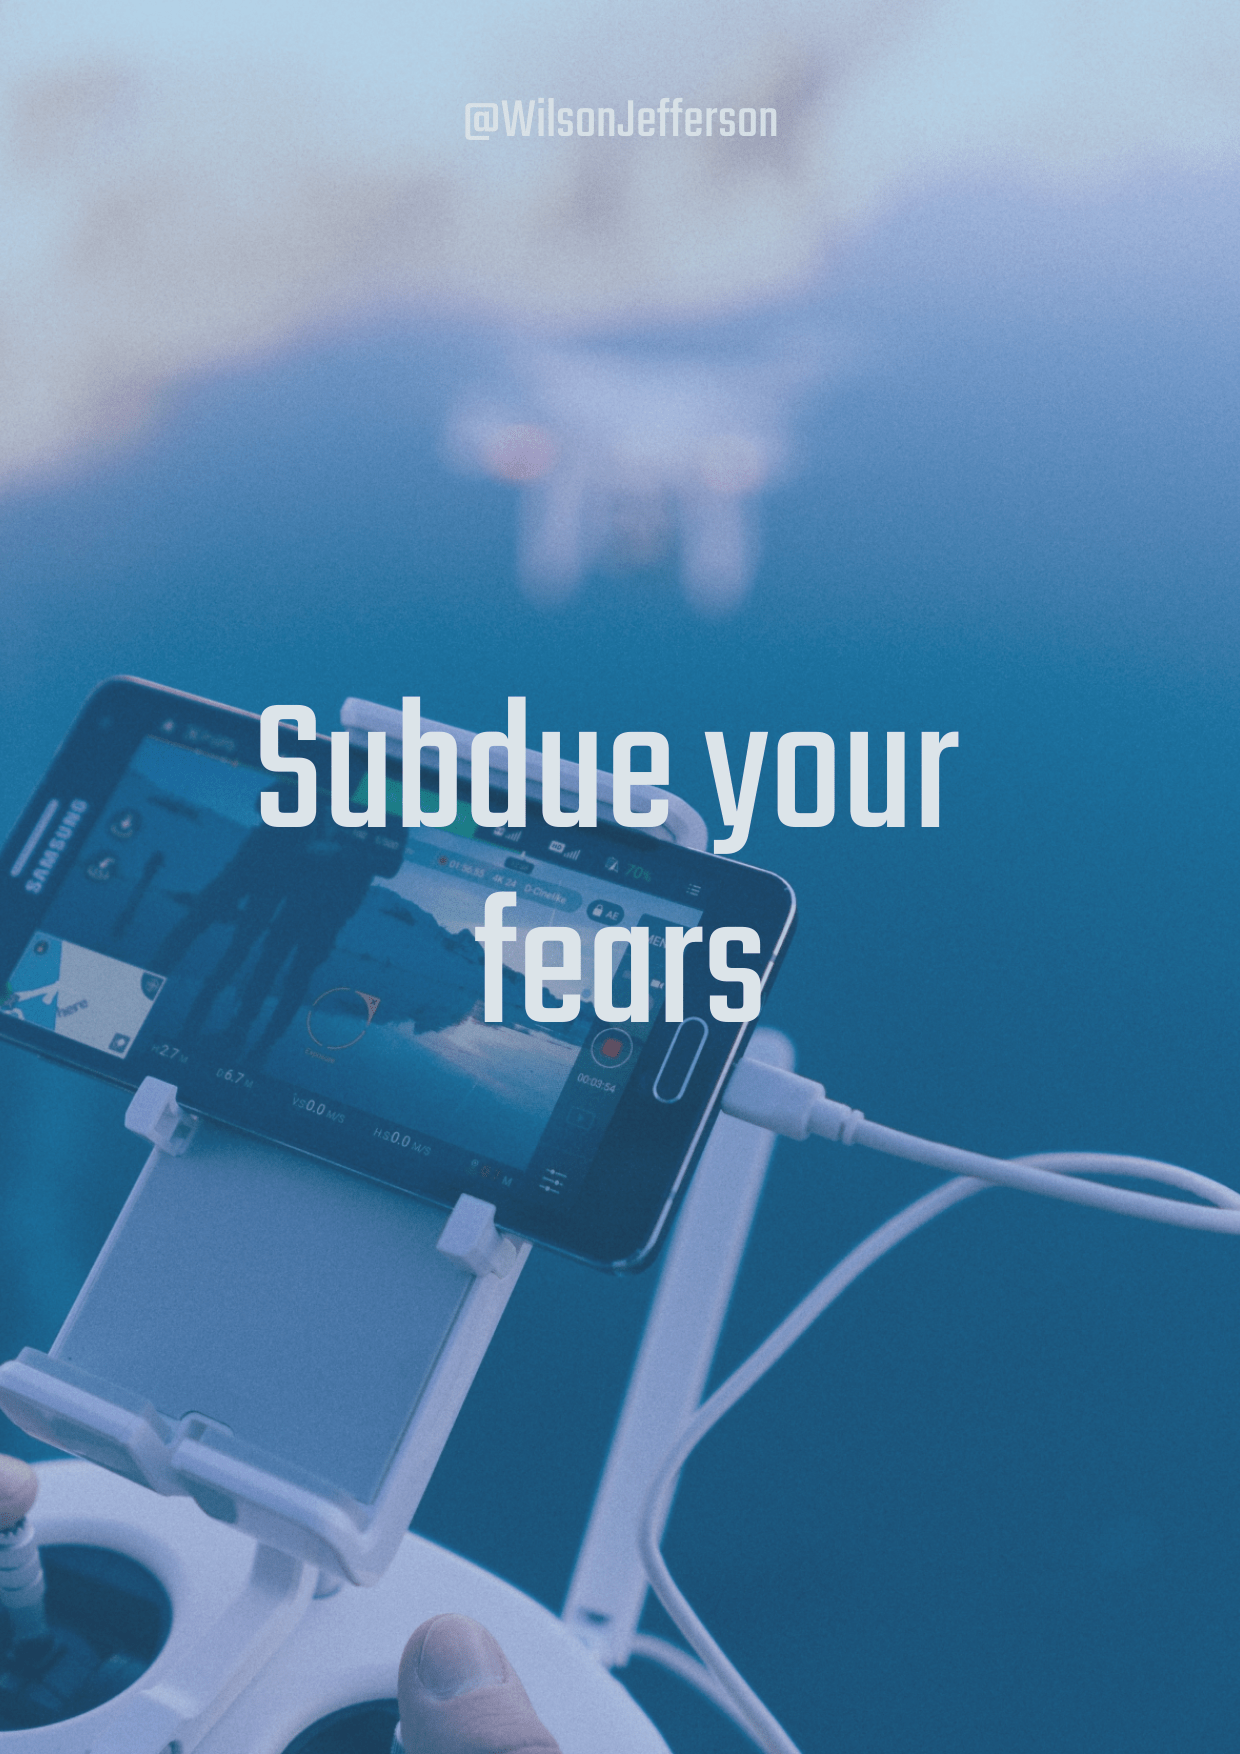 Blue,                Water,                Product,                Text,                Azure,                Sky,                Font,                Computer,                Wallpaper,                Air,                Travel,                A,                Video,                 Free Image